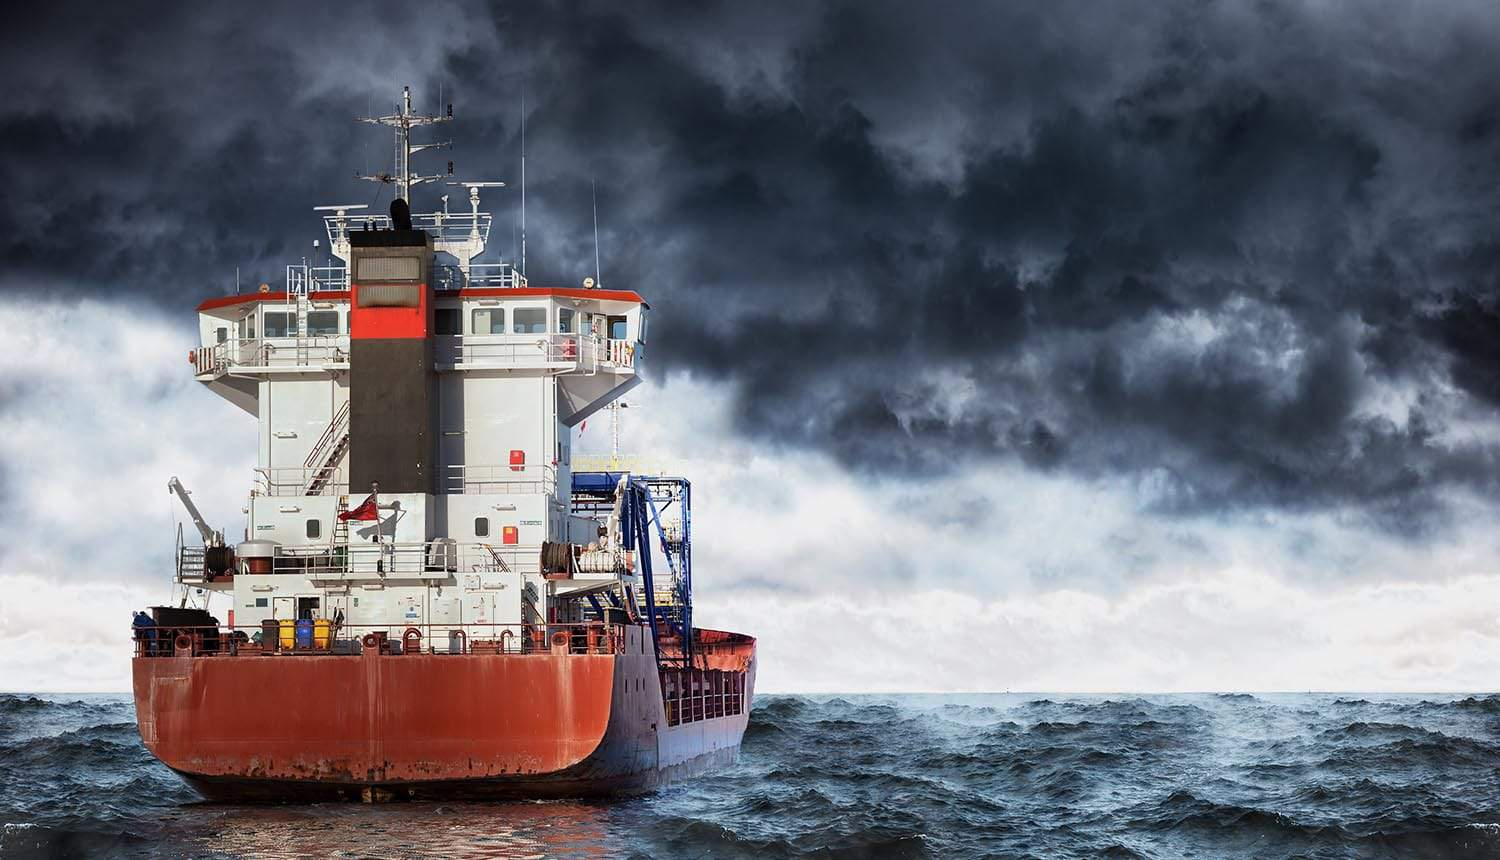 Cargo ship at sea during a storm showing cyber risk in enterprise risk management